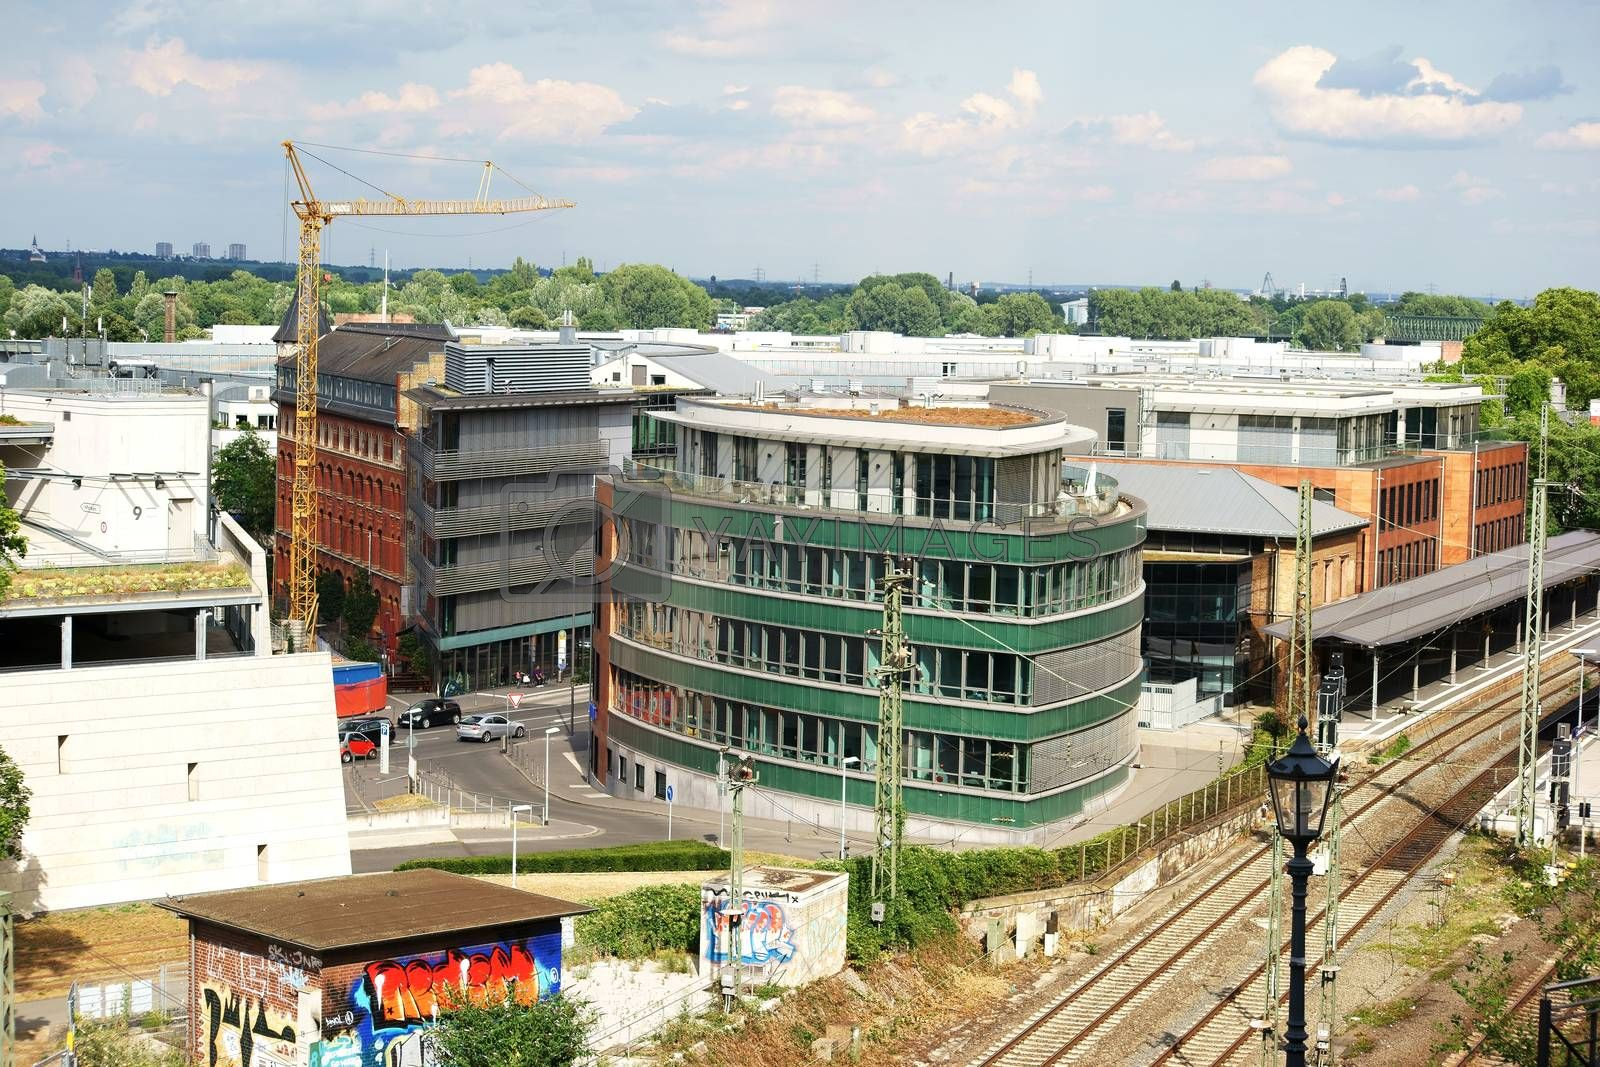 A view over the city of Mainz on the Roman Theatre station in Mainz.